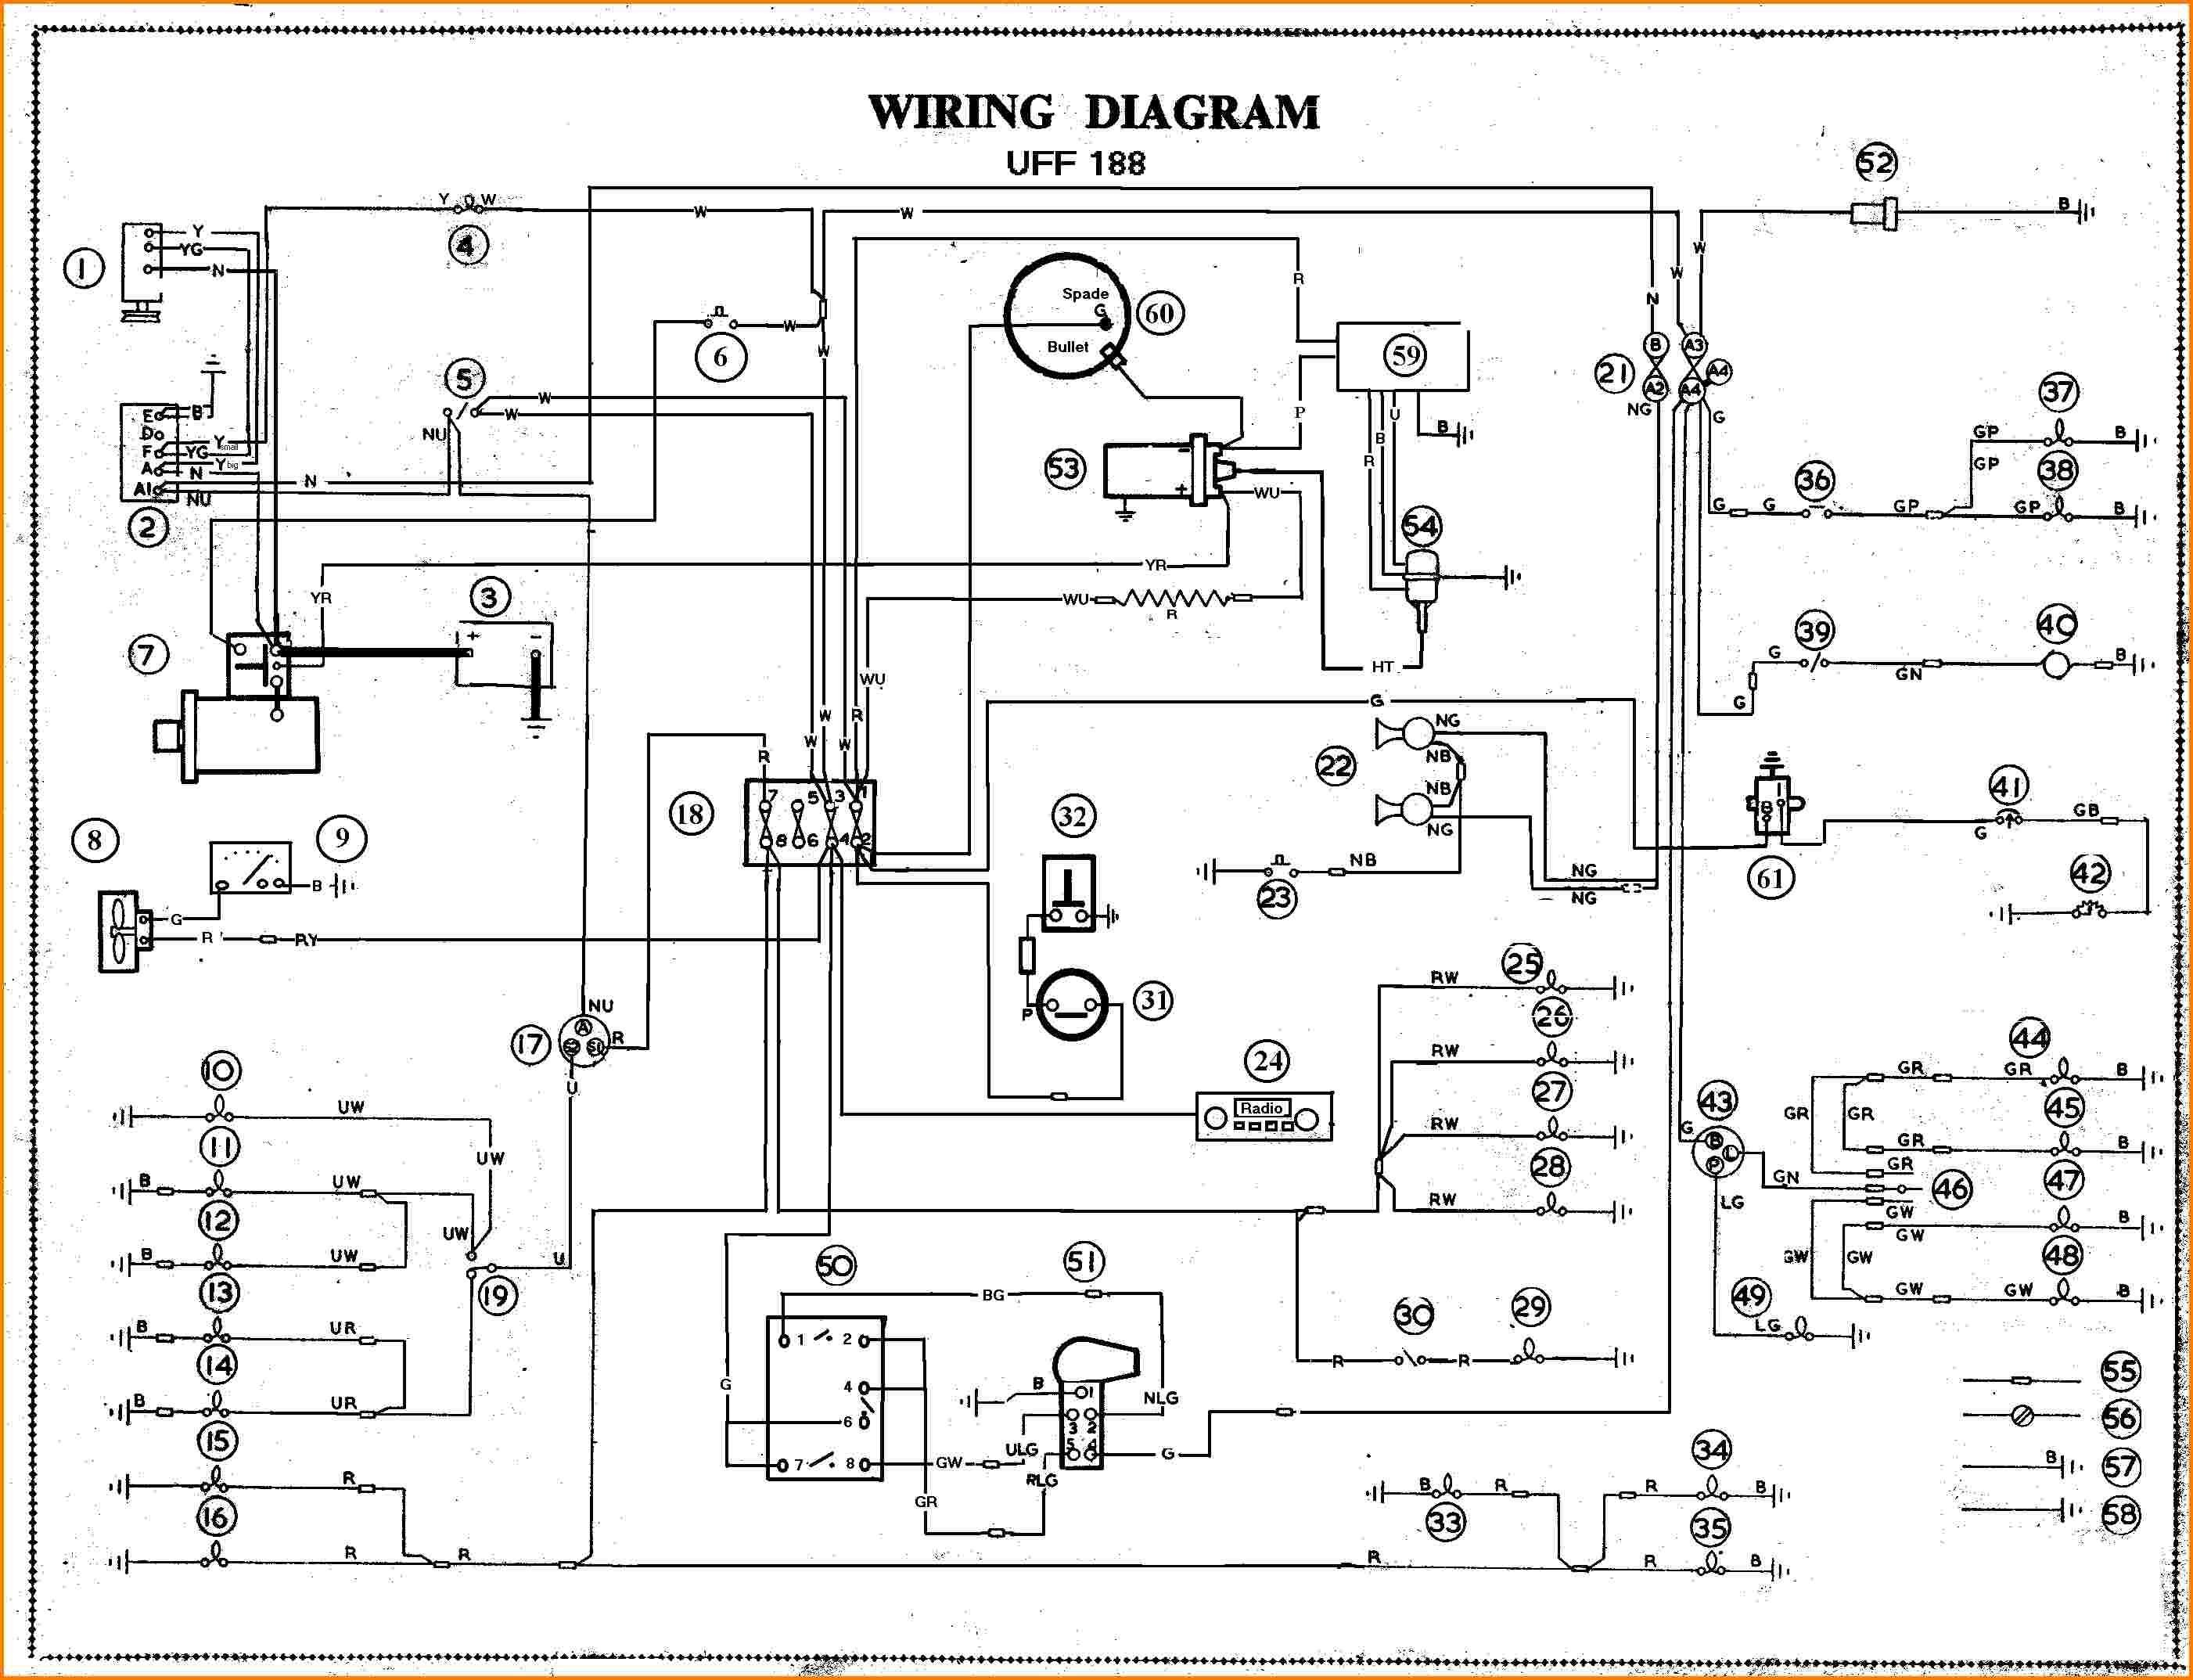 Daihatsu Delta Wiring Diagram Switch 3 Phase Download Library Of Diagrams U2022 Rh Sv Ti Com Motor